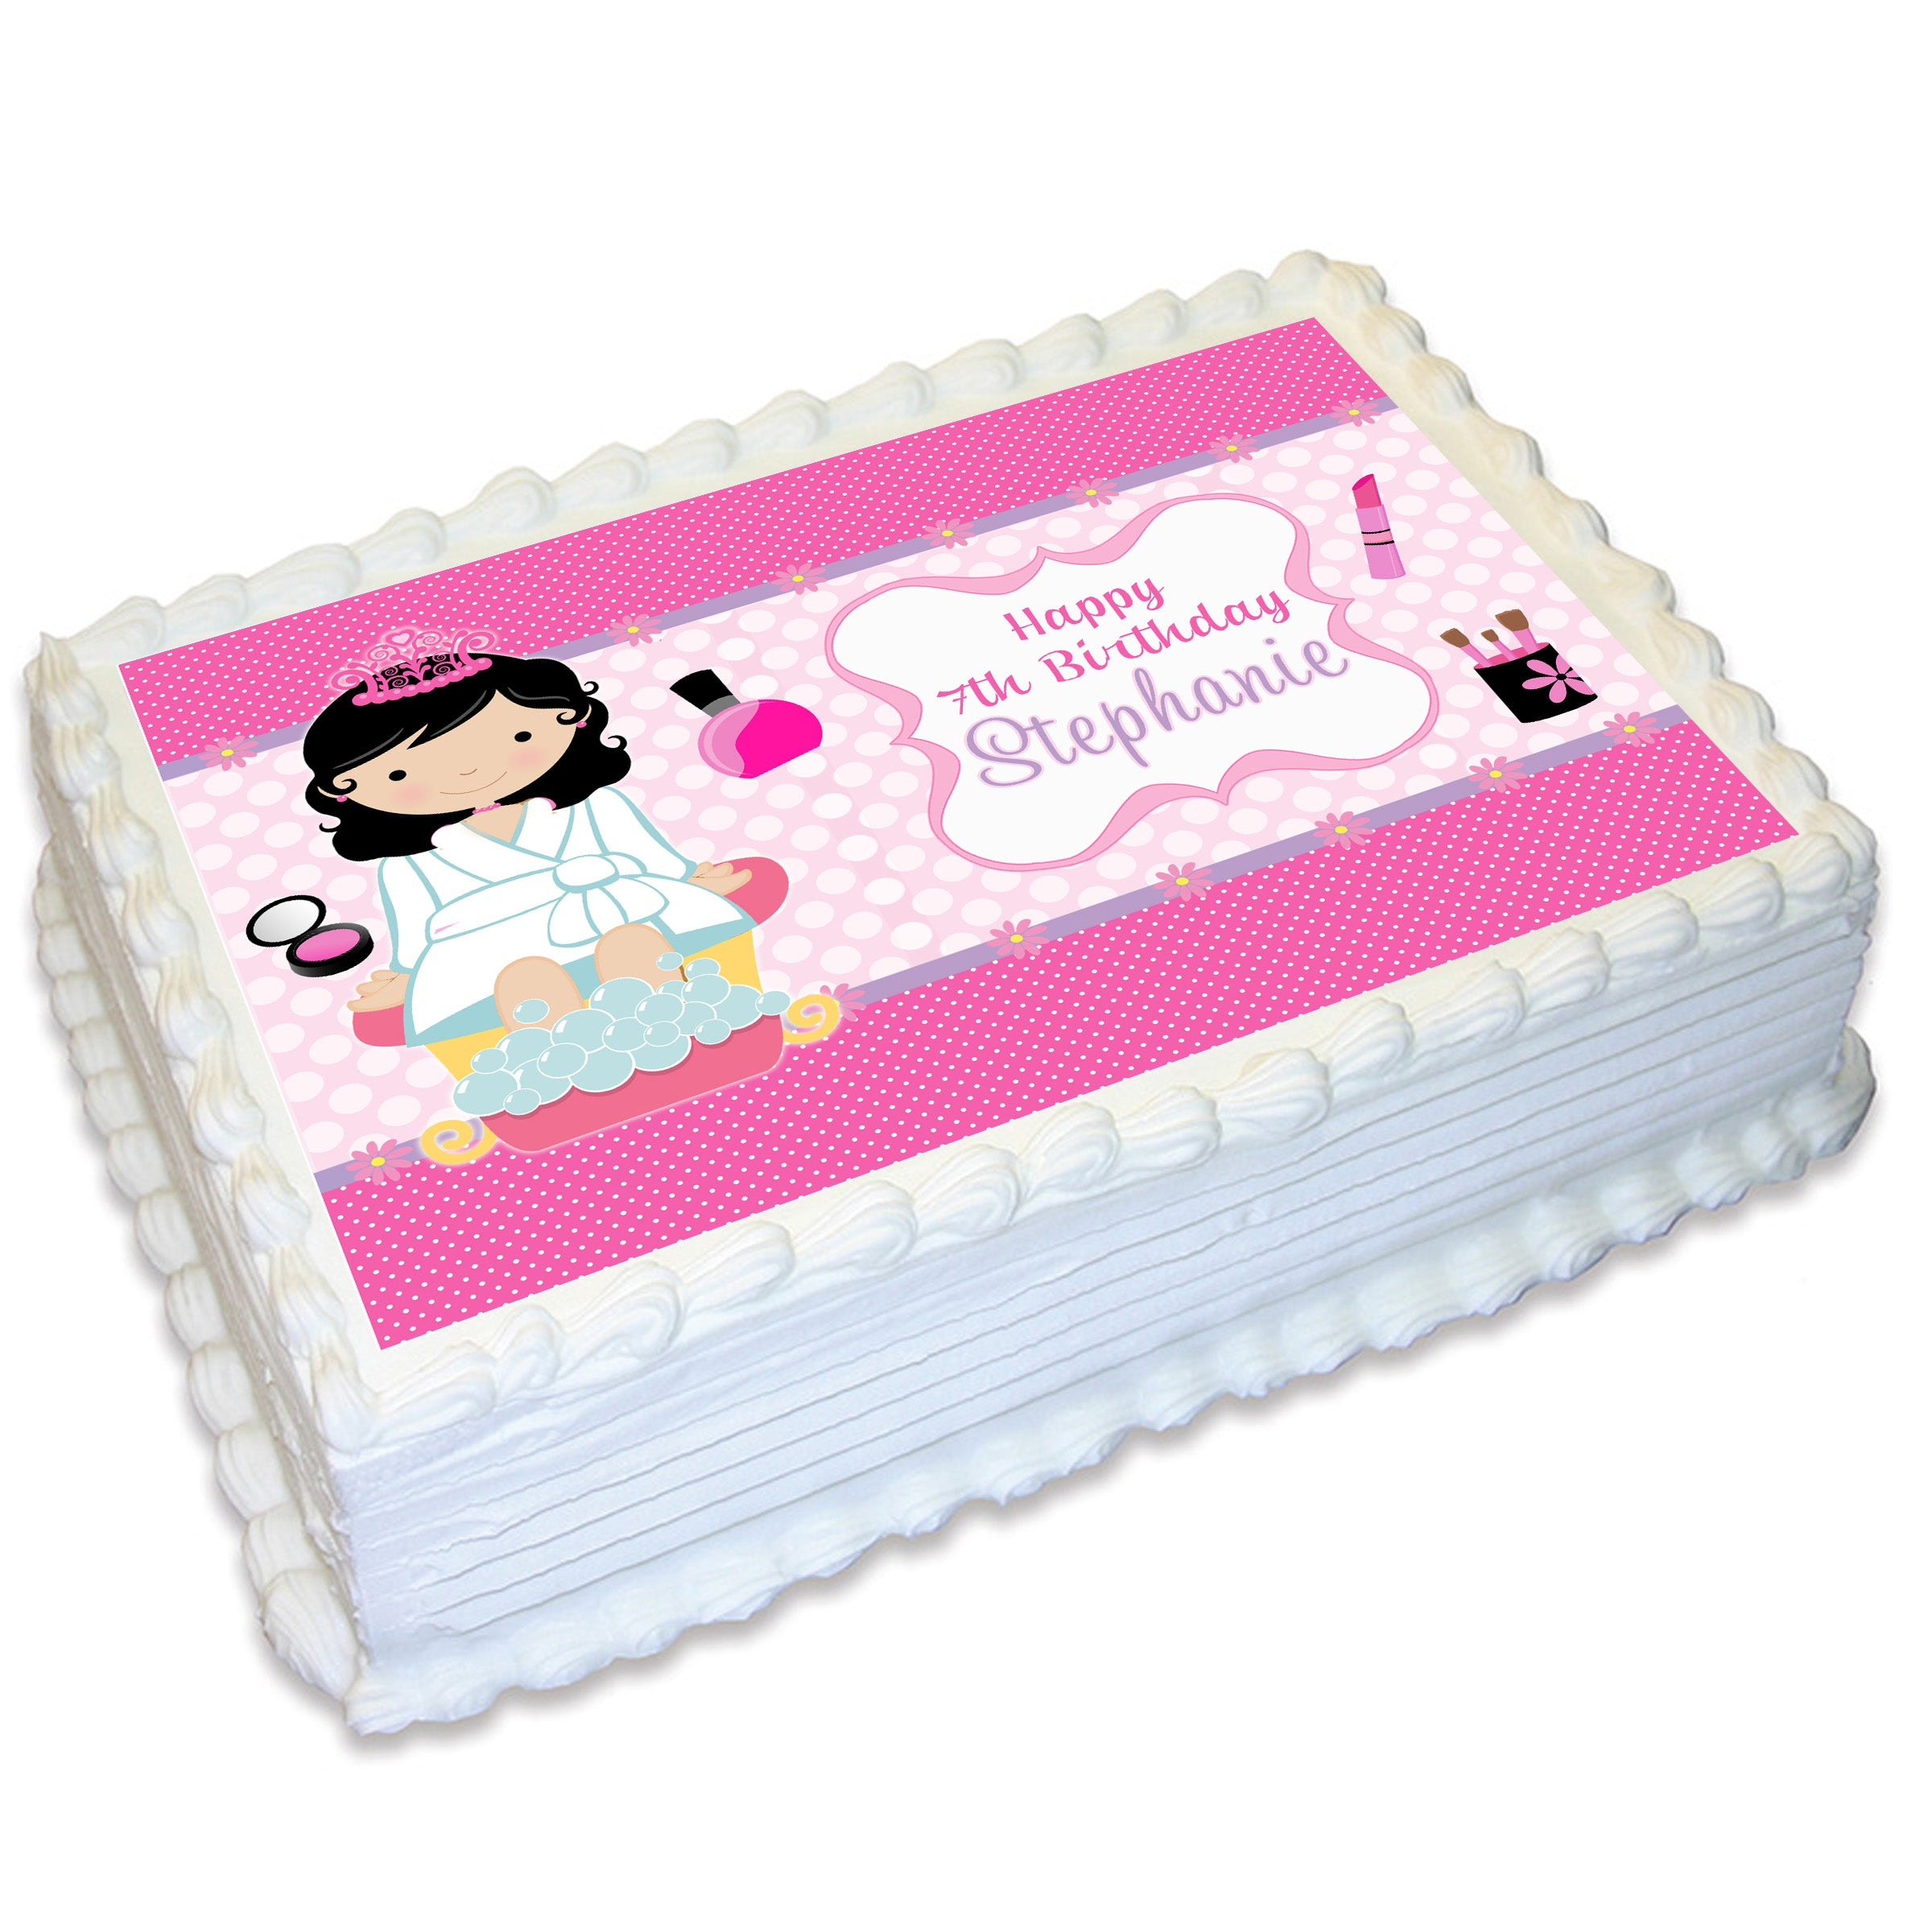 Wondrous Pamper Spa Party Rectangle Edible Cake Topper Deezee Designs Funny Birthday Cards Online Necthendildamsfinfo